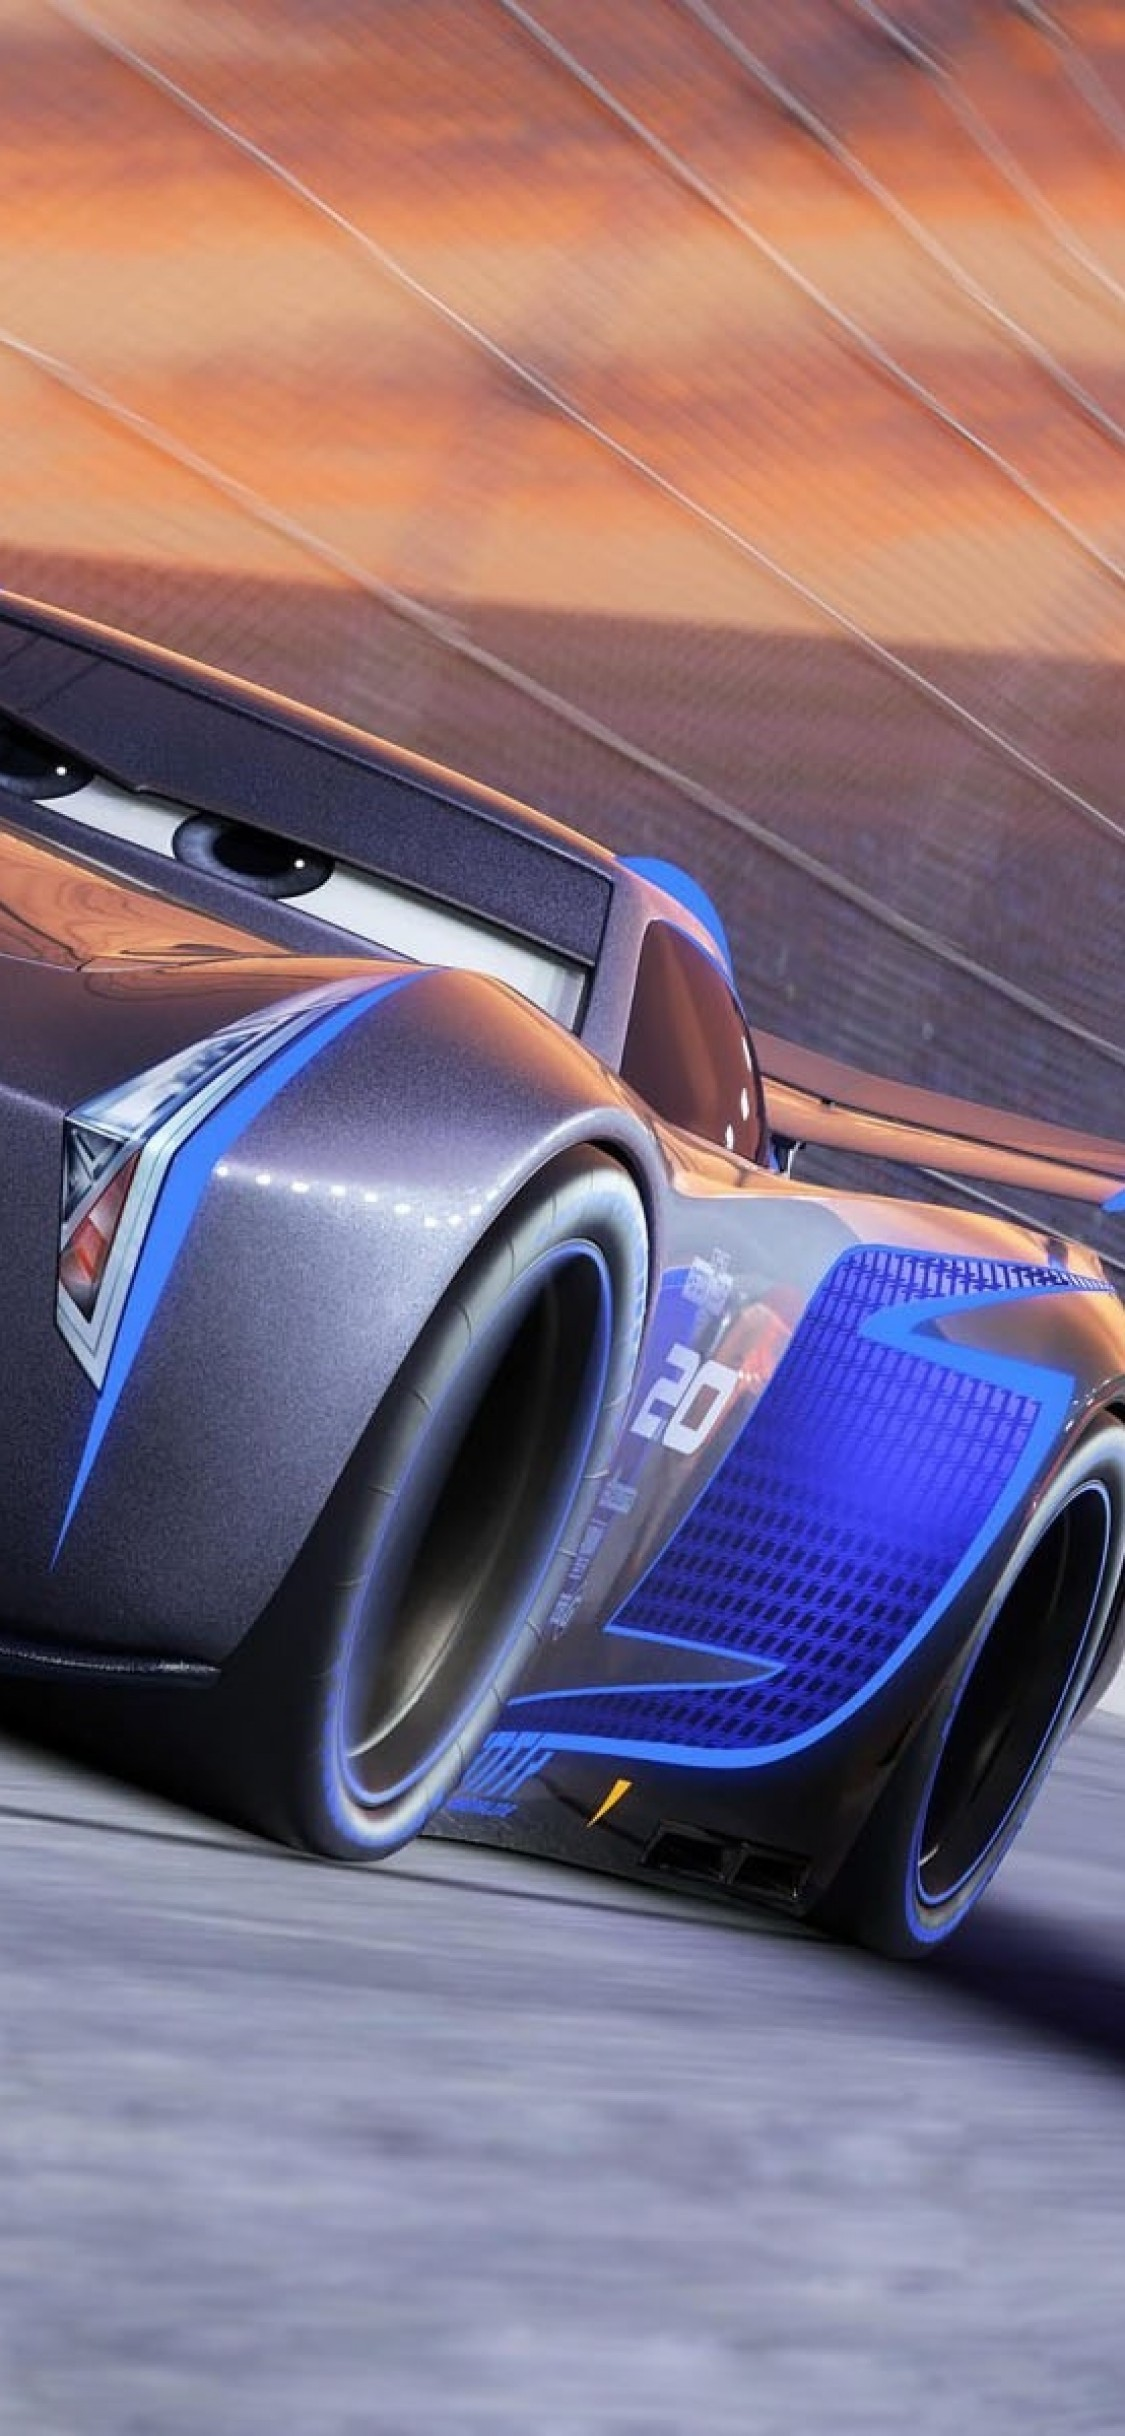 Cars 3 Jackson Storm Lightning Mcqueen Animation Cars 3 Blue Car 1528363 Hd Wallpaper Backgrounds Download